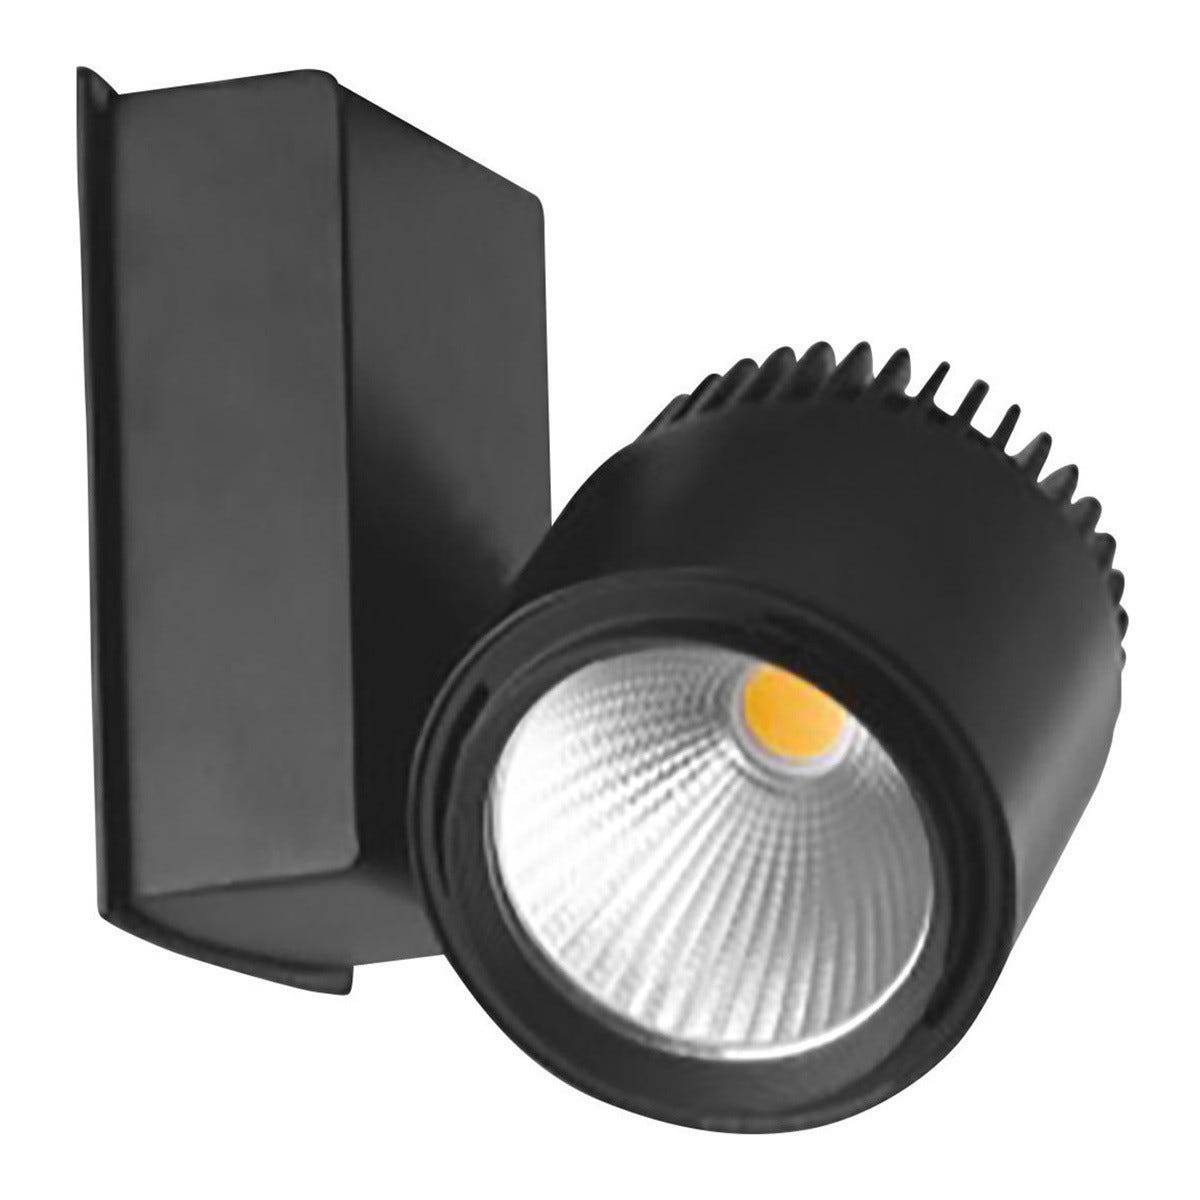 Proiettore Led Per Sistema A Binario Train 40w 4000 Lumen 4000k Colore Nero